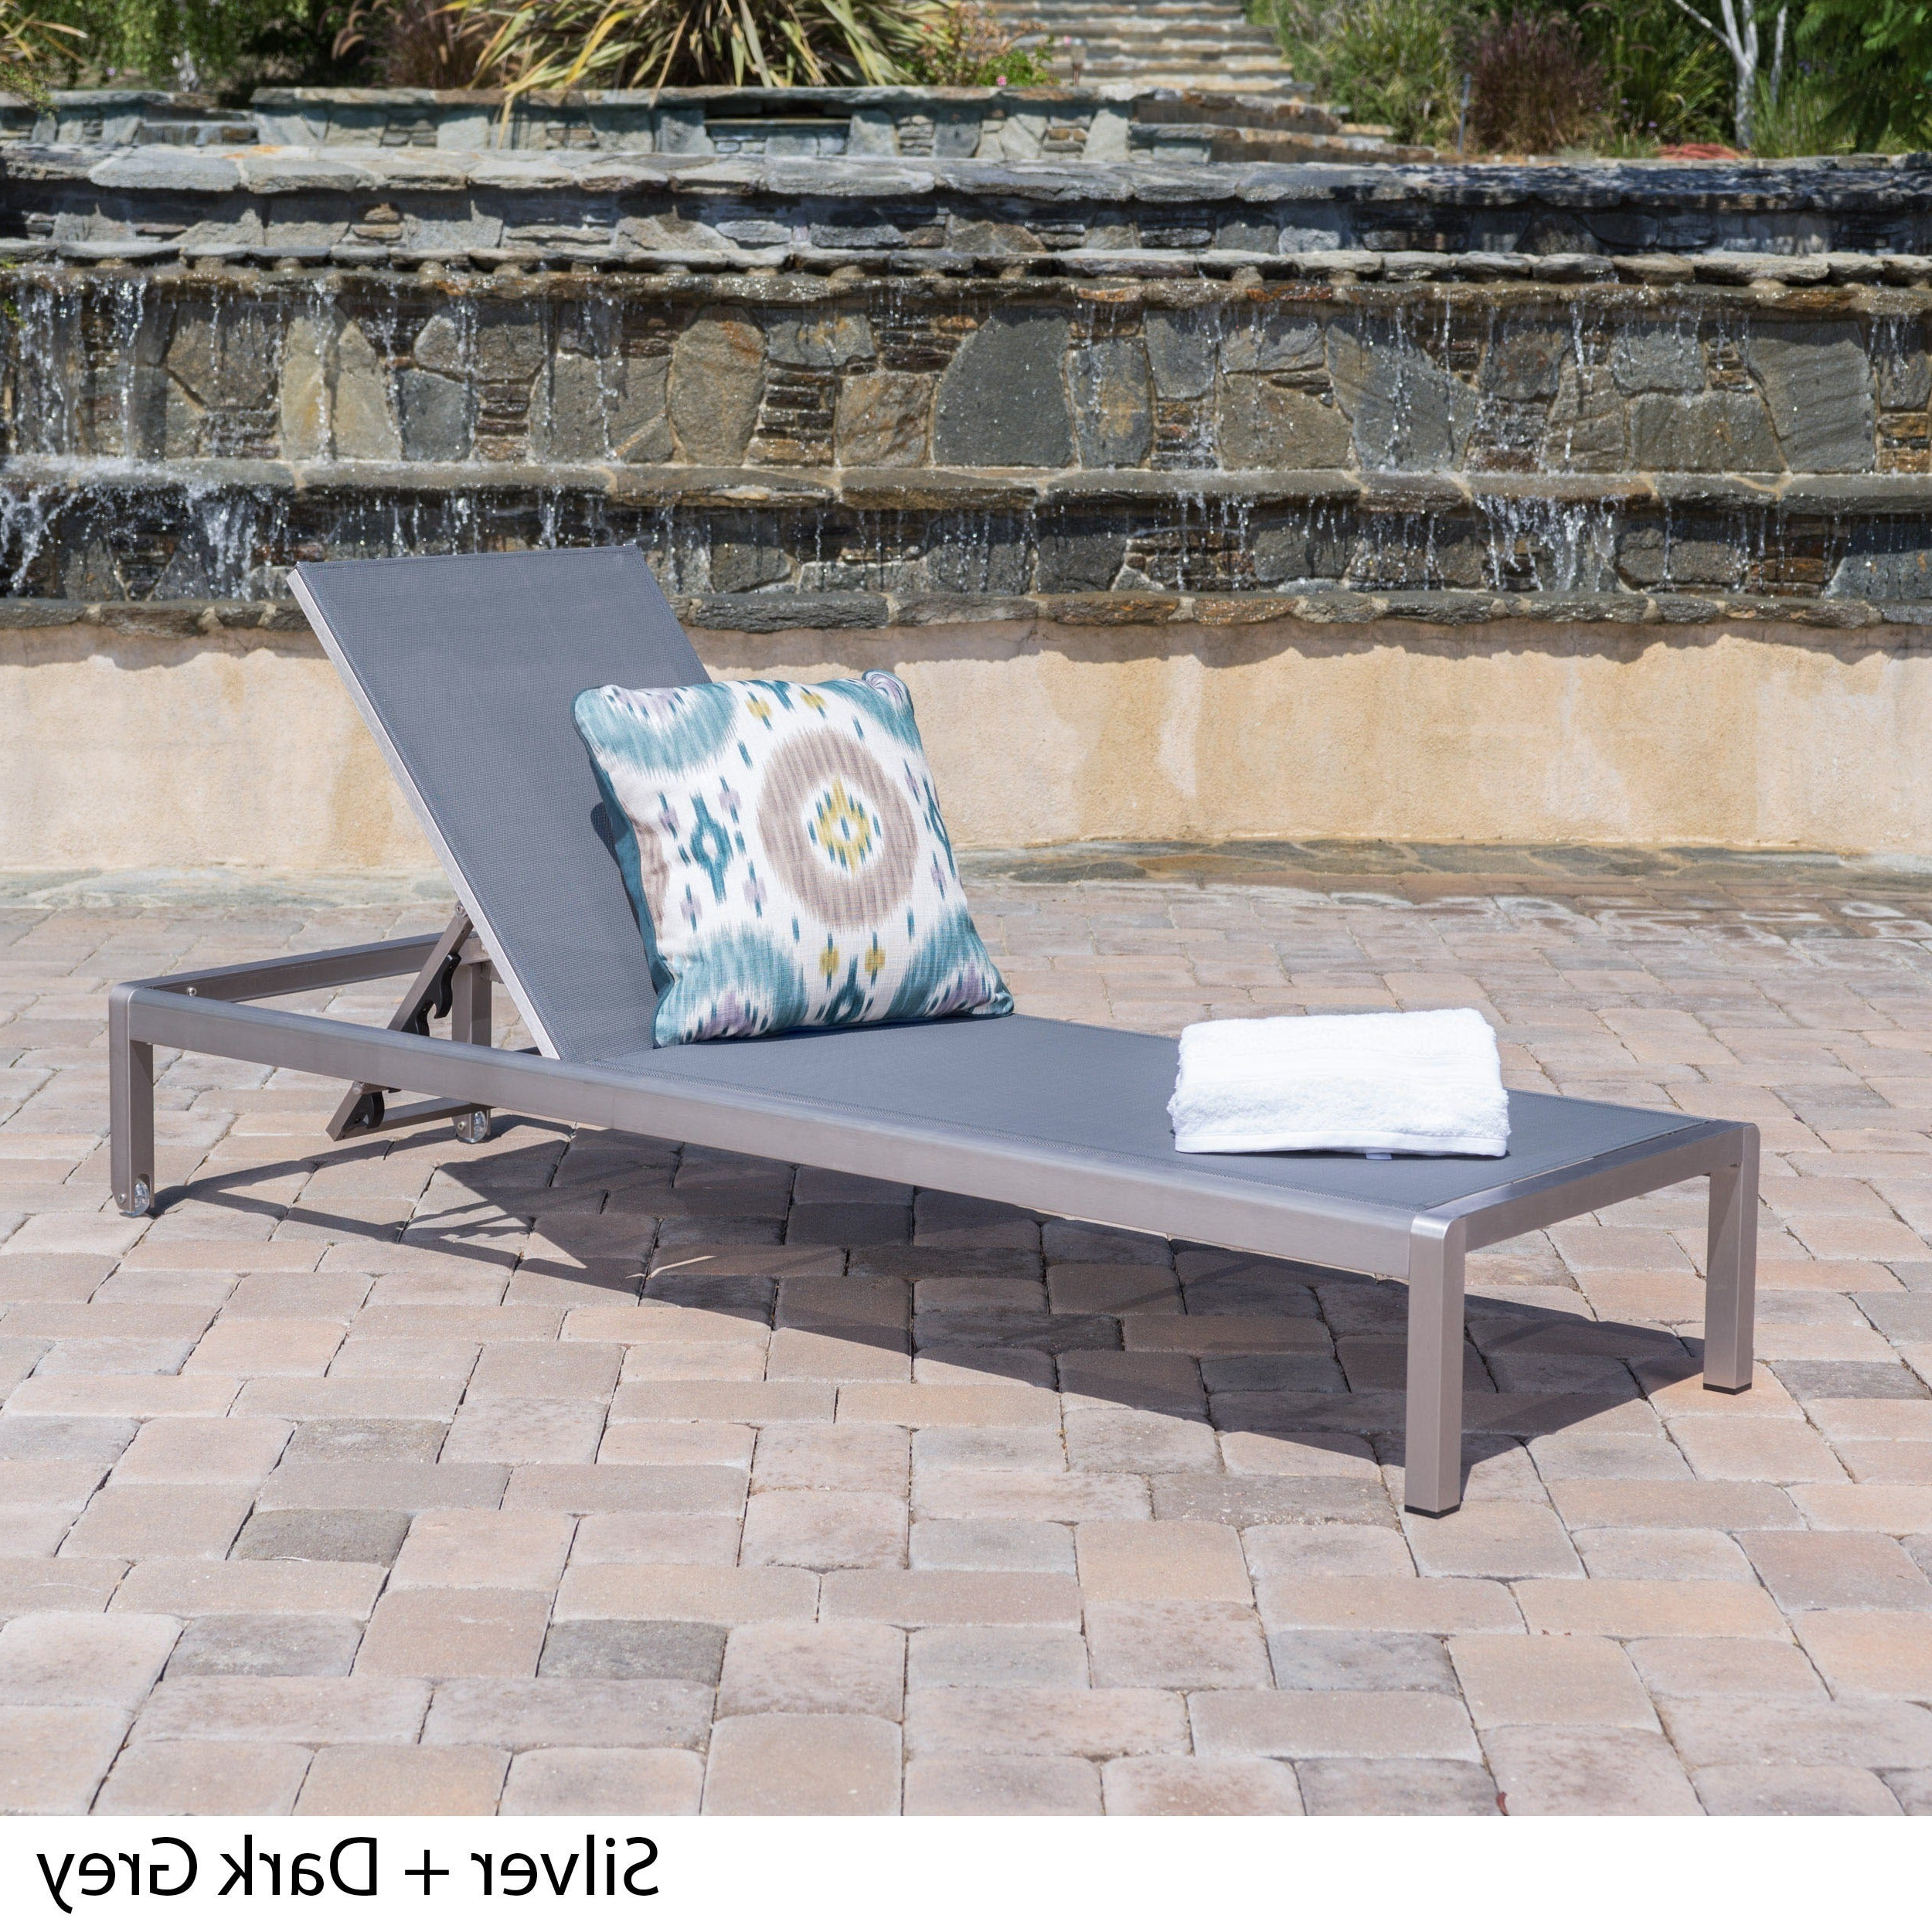 Preferred Cape Coral Outdoor Aluminum Adjustable Chaise Loungechristopher Knight Home Pertaining To Cape Coral Outdoor Aluminum Chaise Lounges (View 9 of 25)